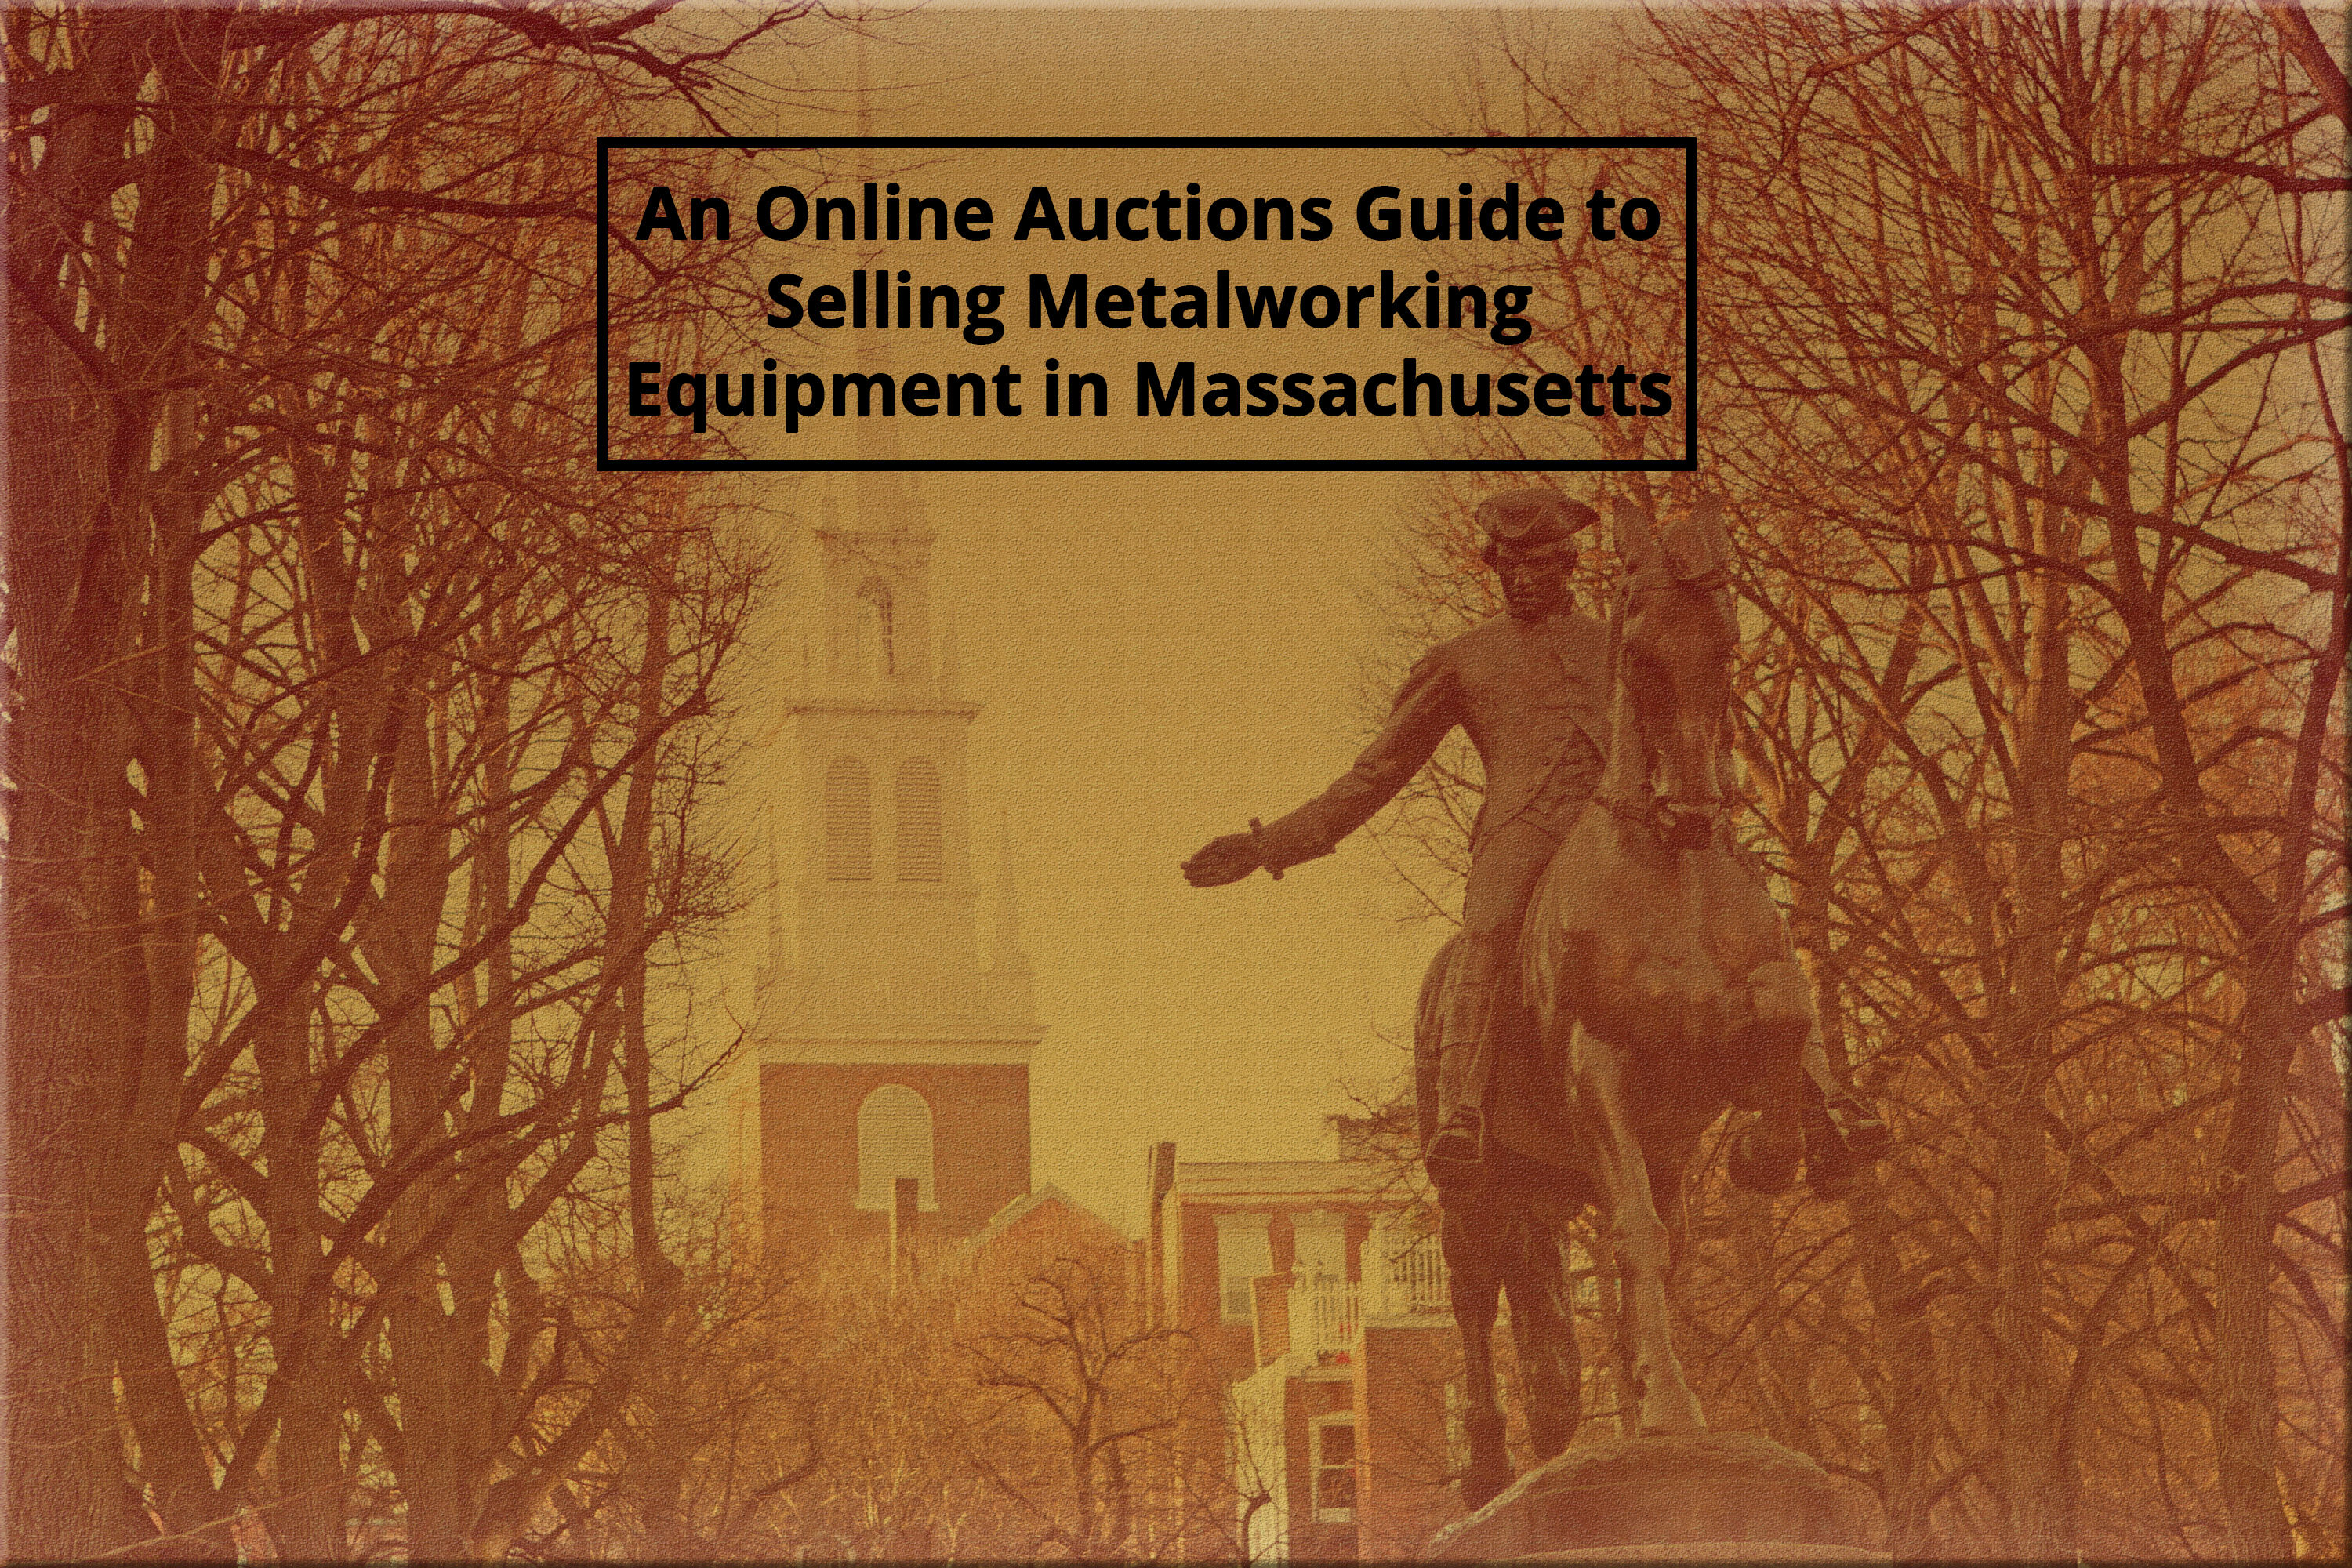 An Online Auctions Guide to Selling Metalworking Equipment in Massachusetts